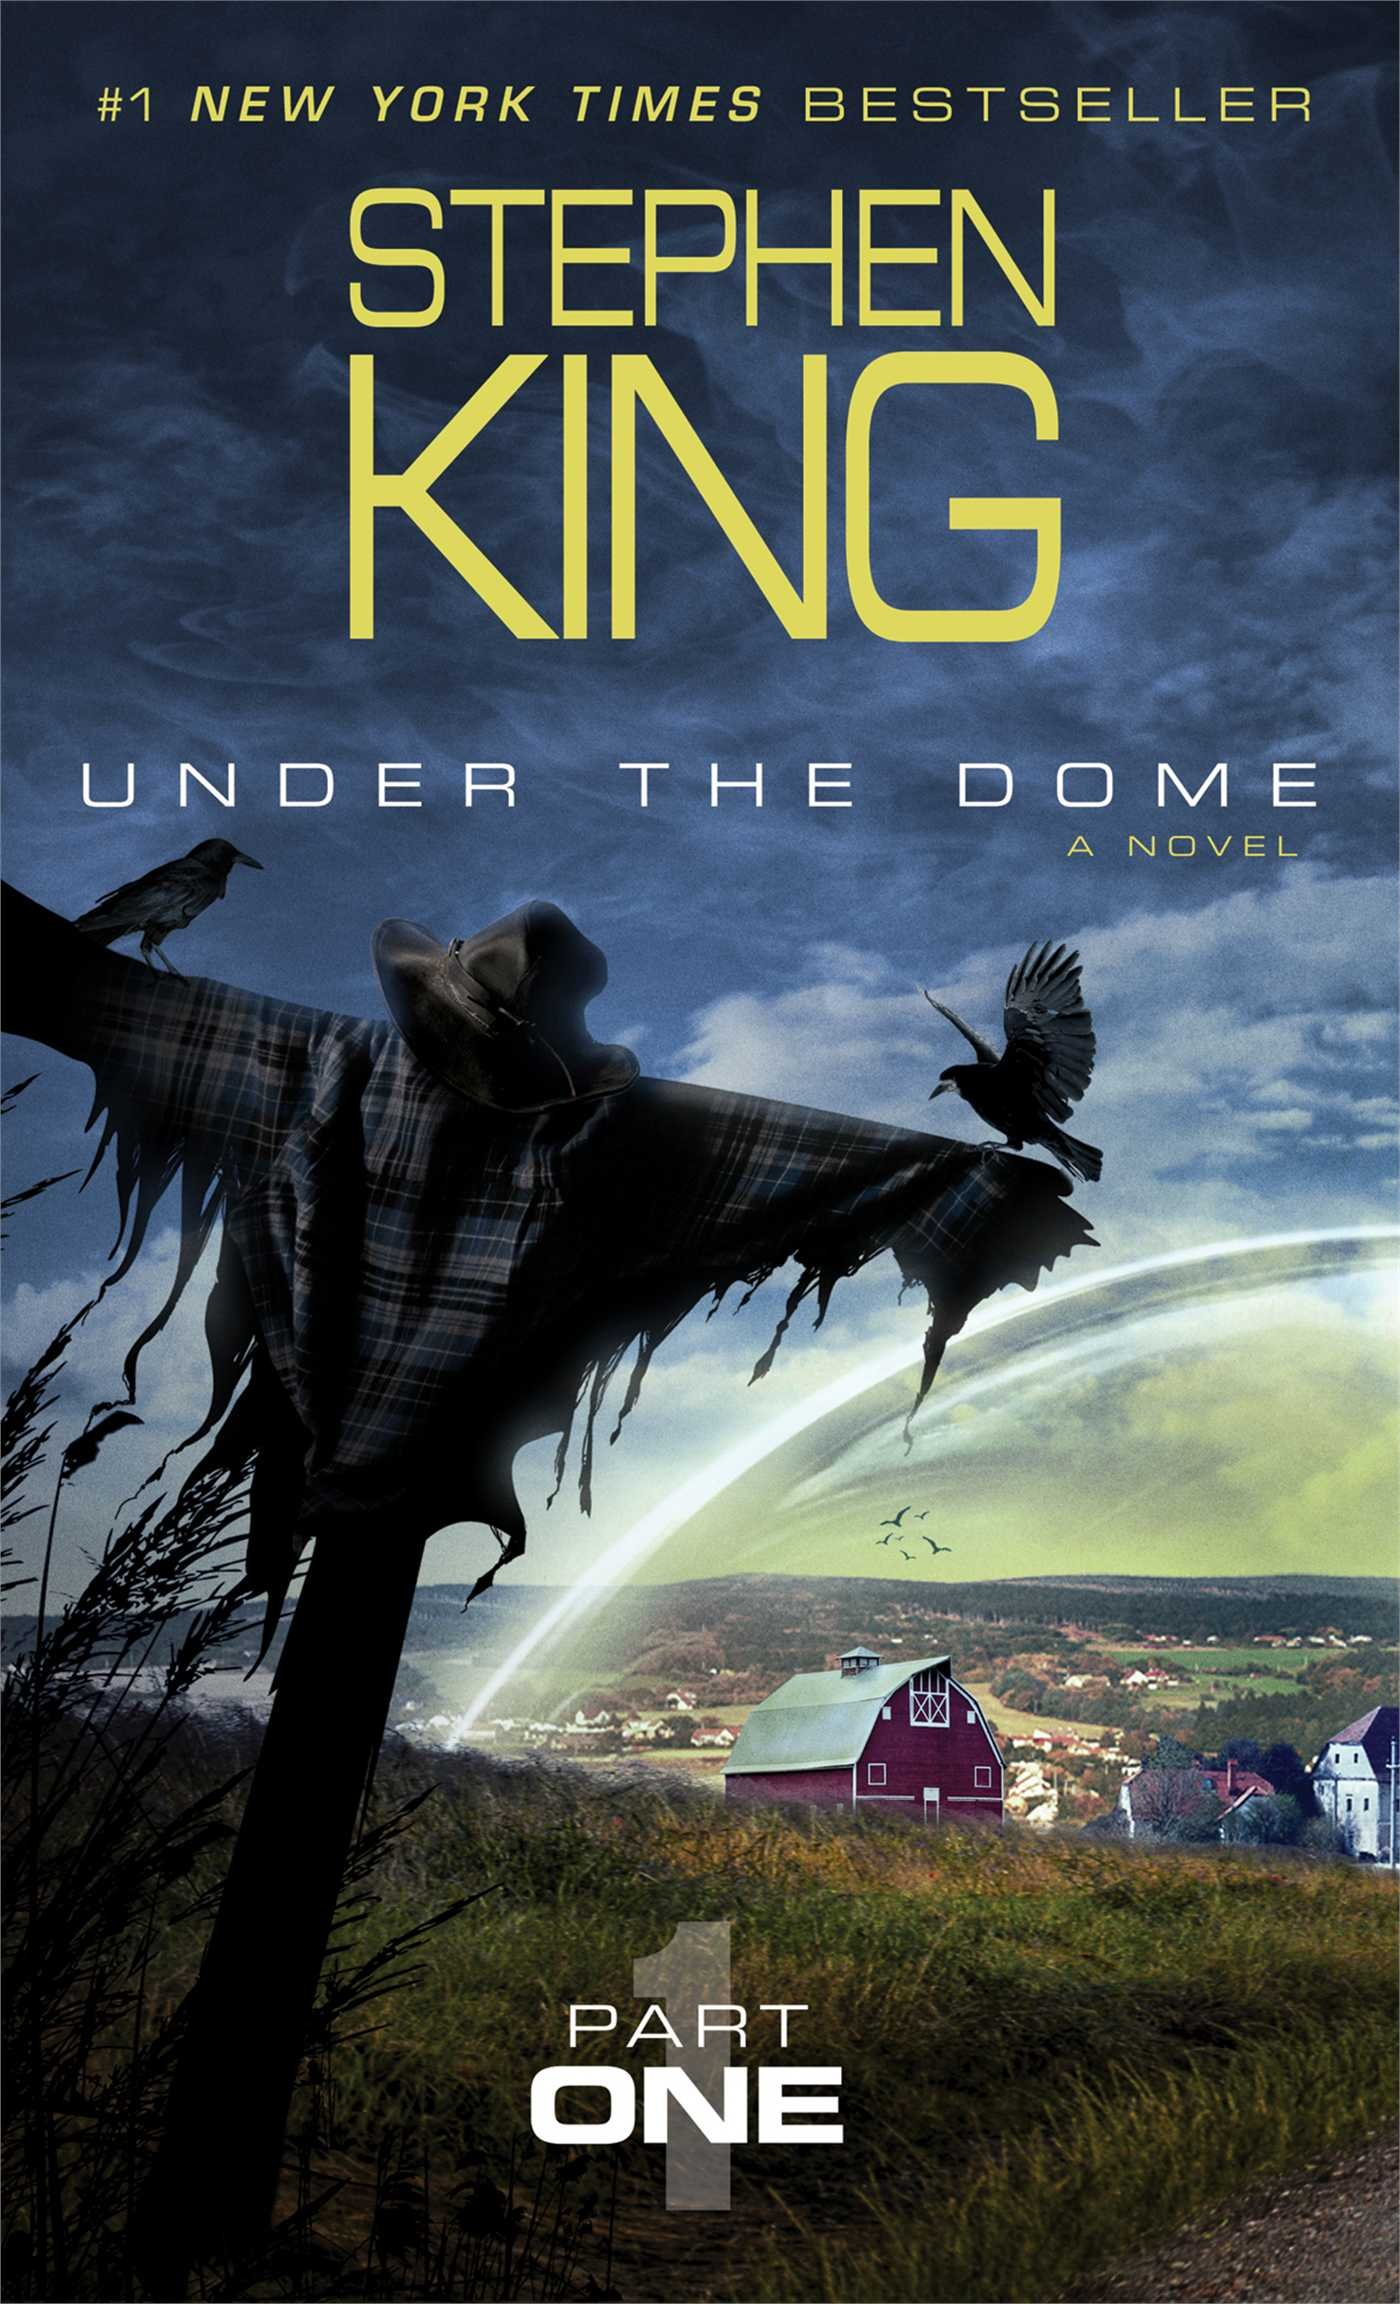 under the dome novel summary